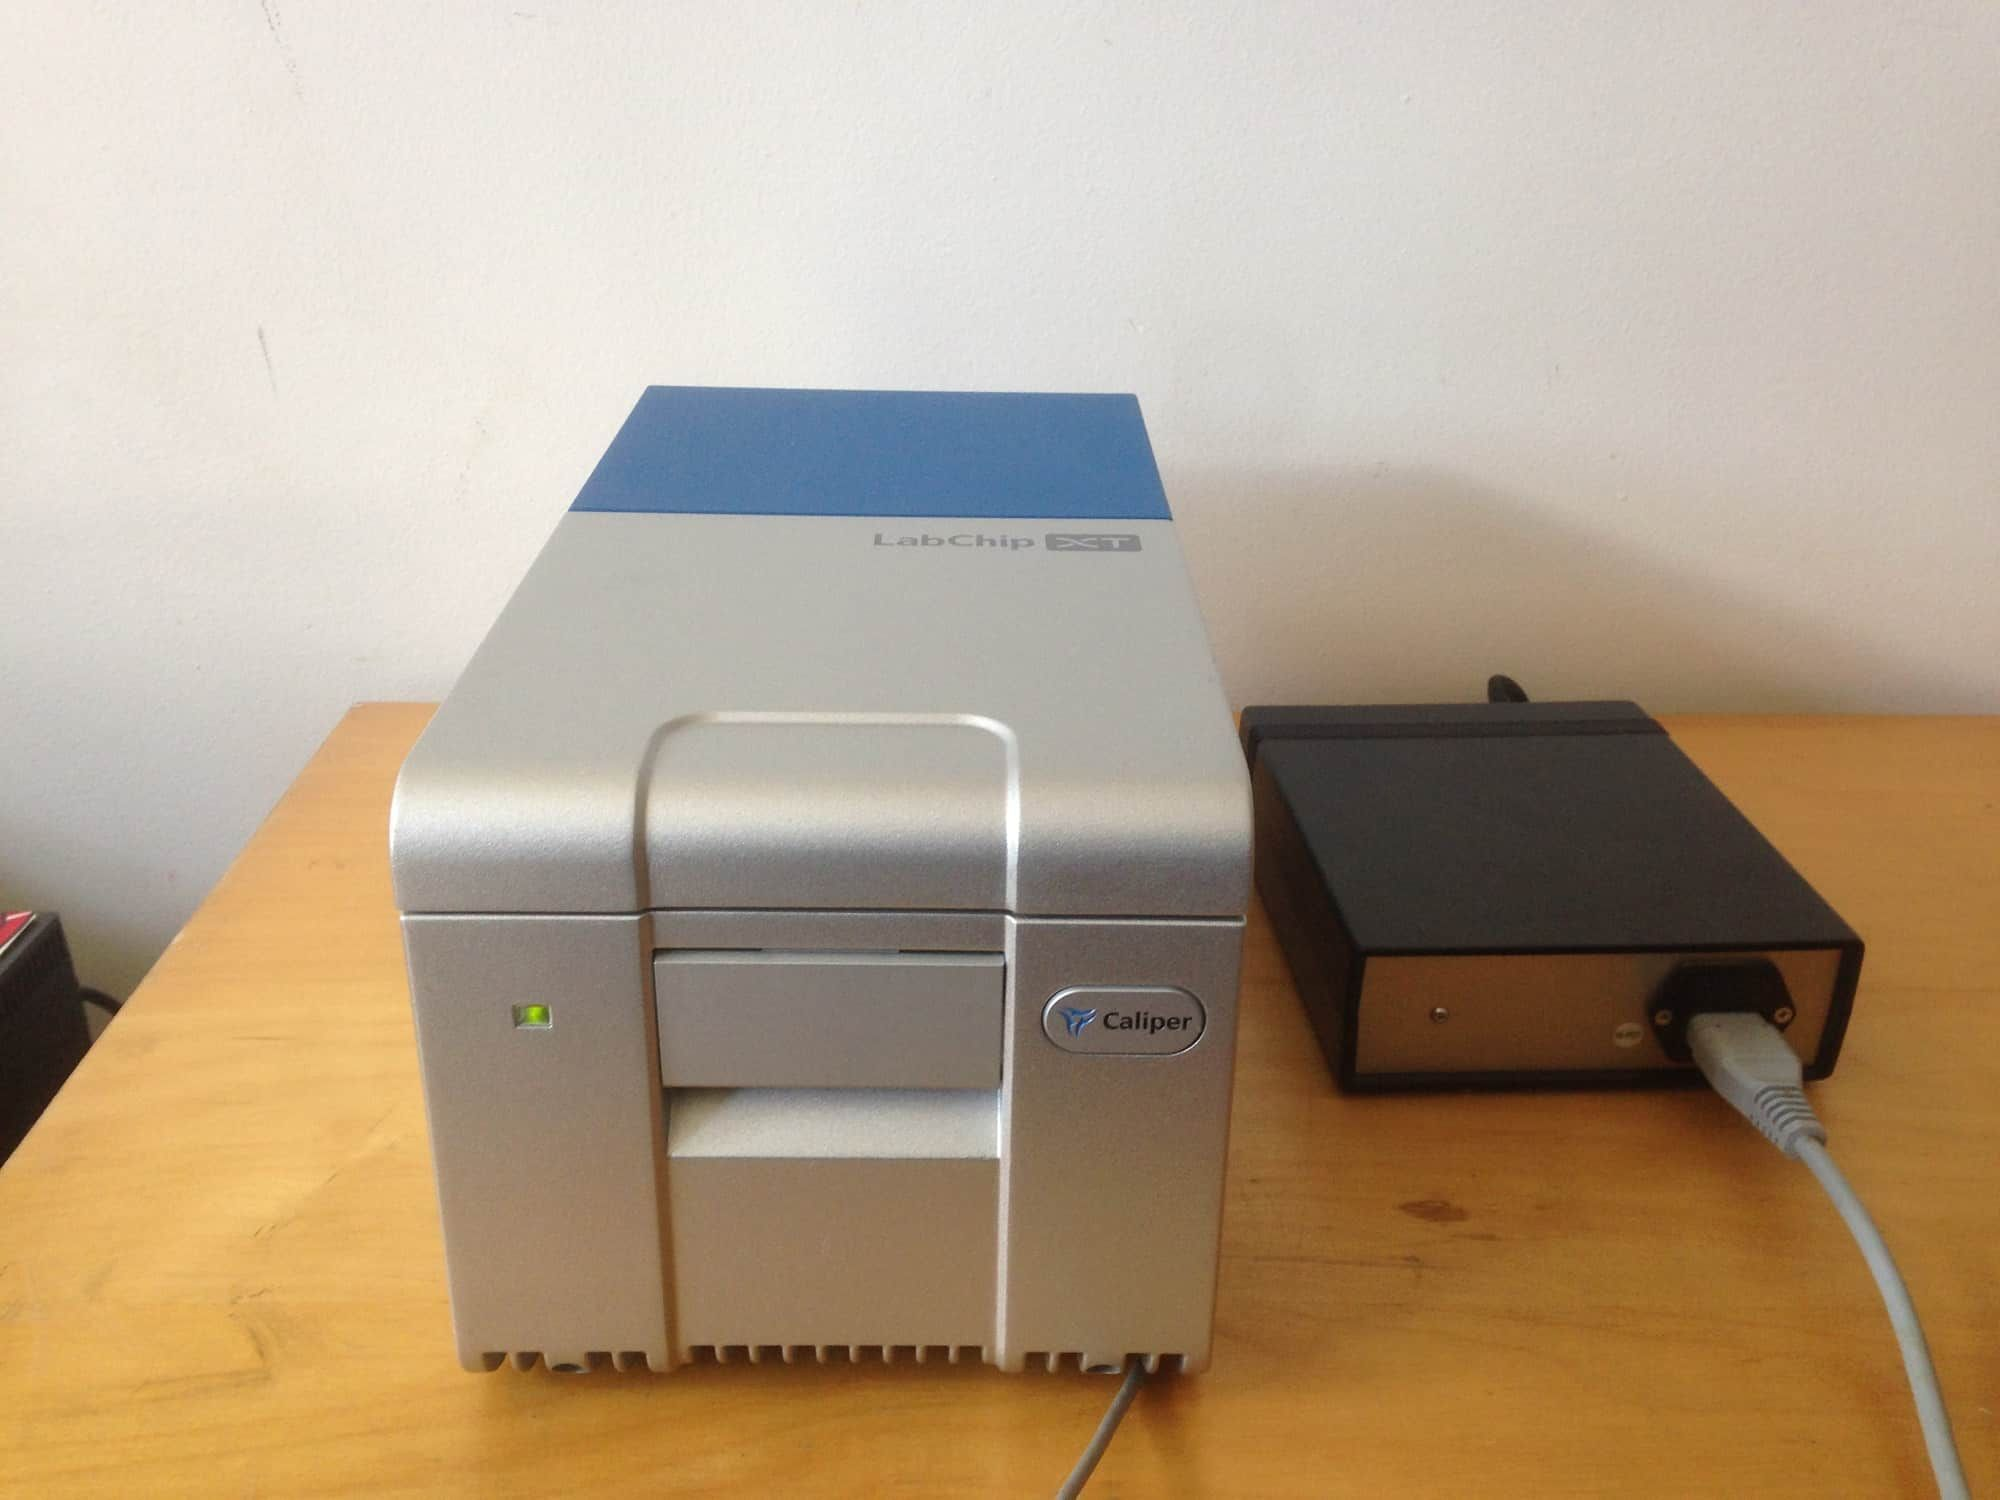 Perkin Elmer Caliper LabChip XT Concentration Fractionation Nucleic Acid including Software